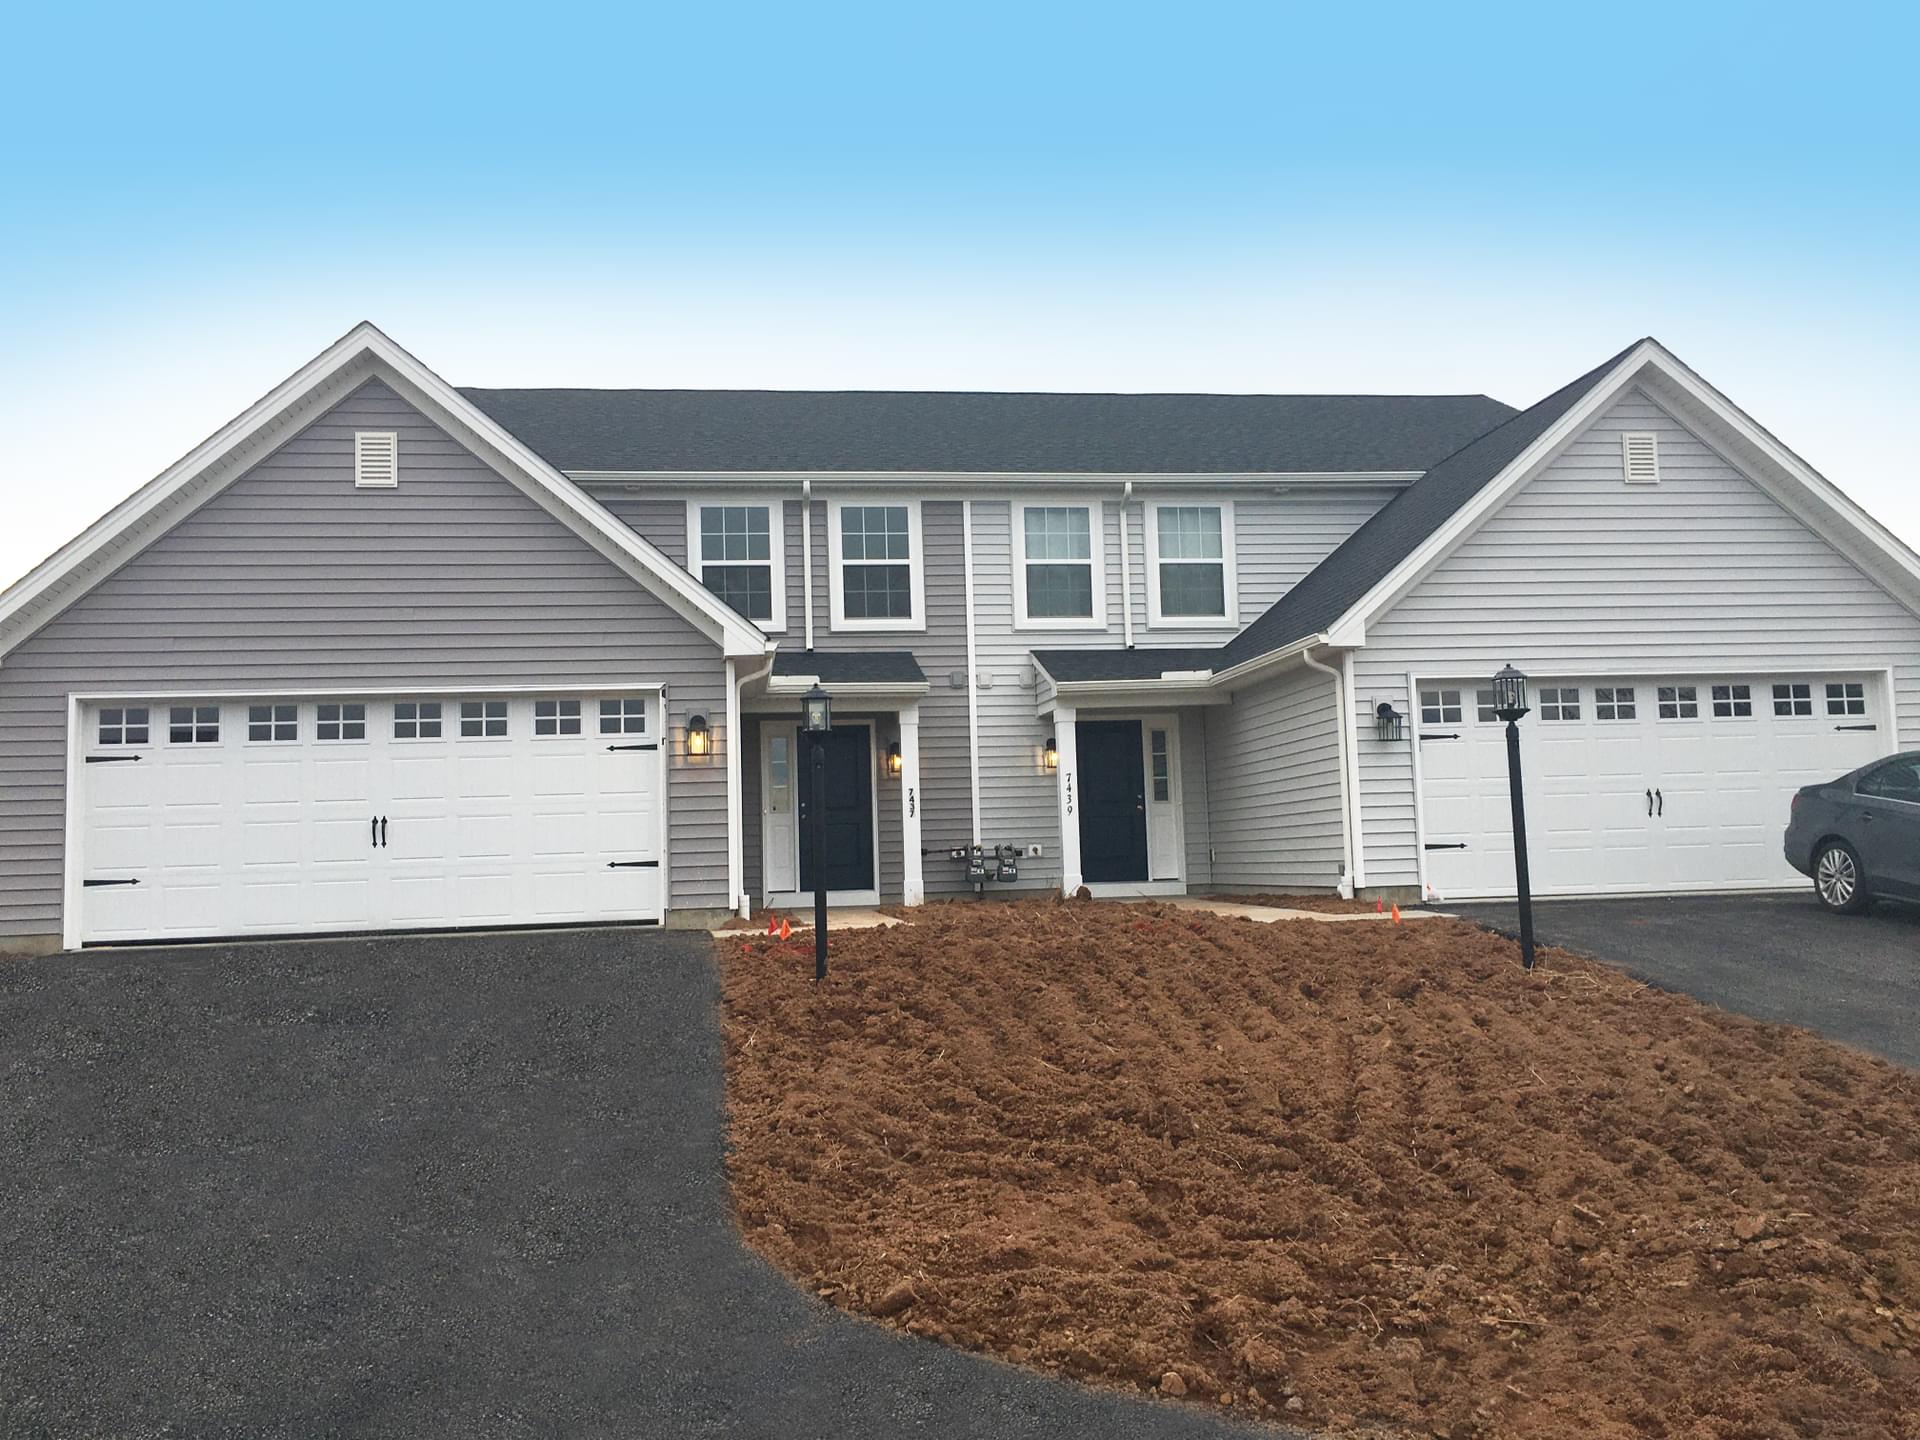 Berks Homes in Lot#7 7437 Saint Patrick Ct., Abbotstown, PA 17301 PA